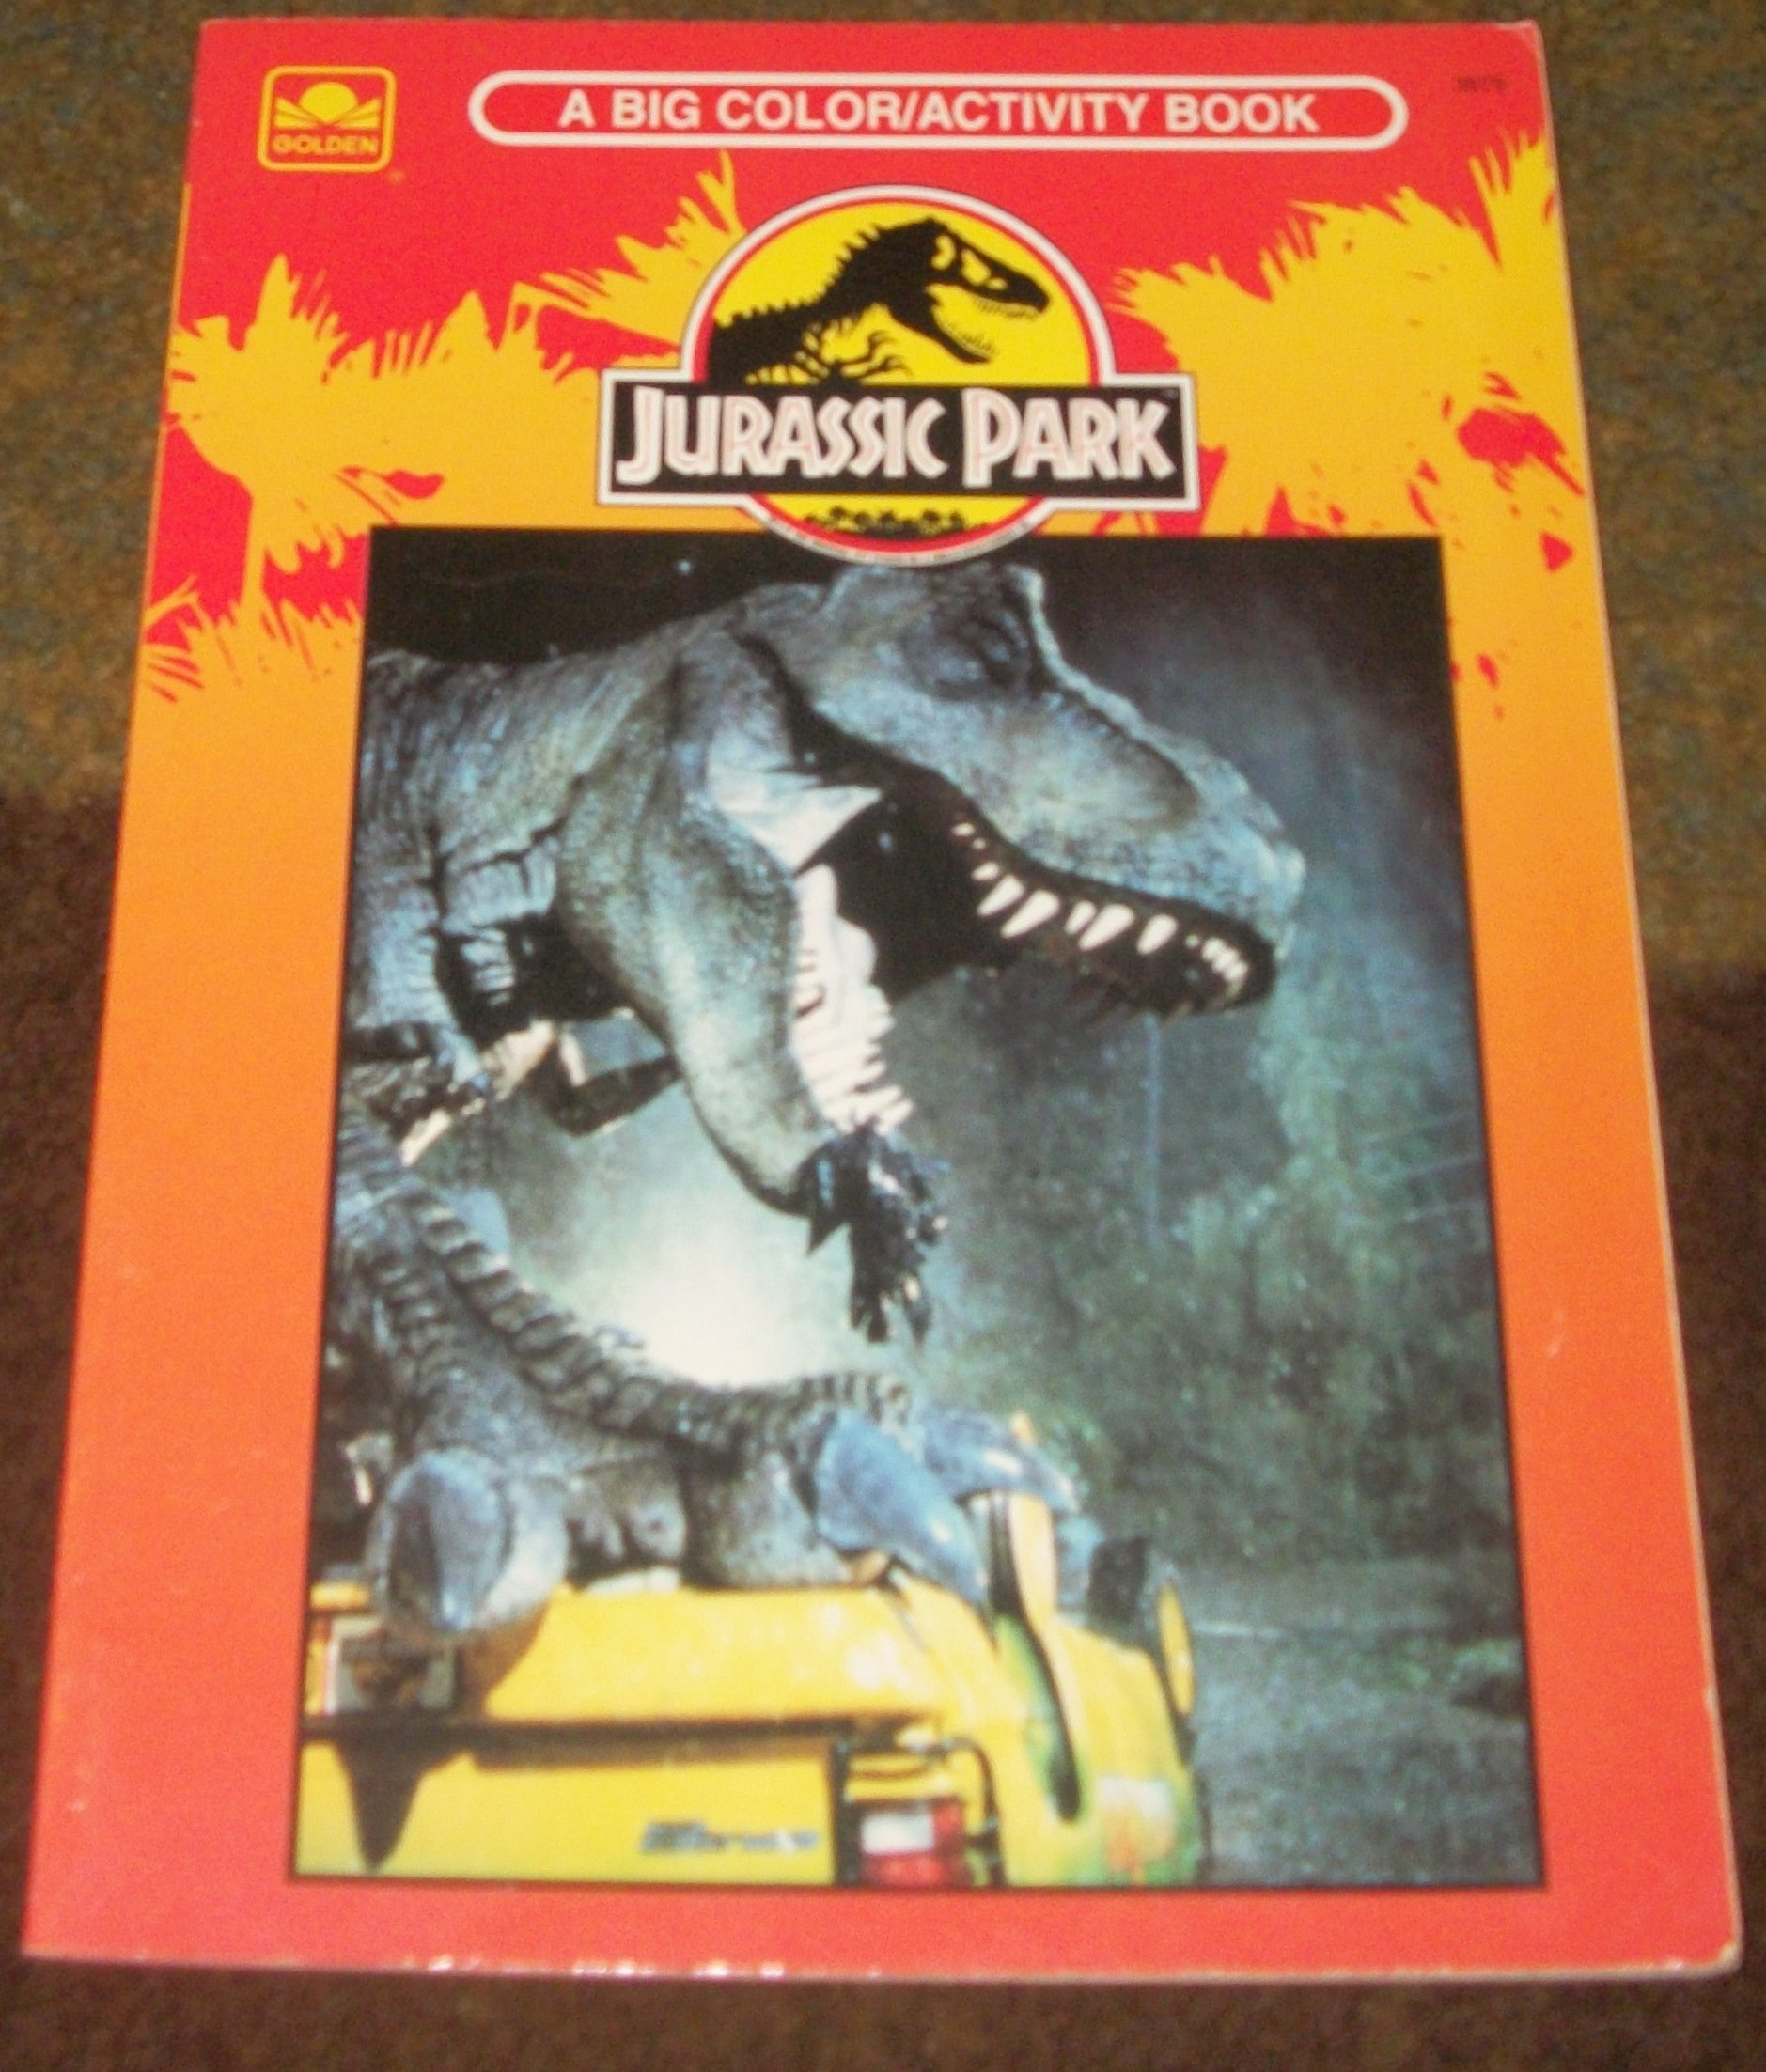 Jurassic Park A Big Color Activity Book